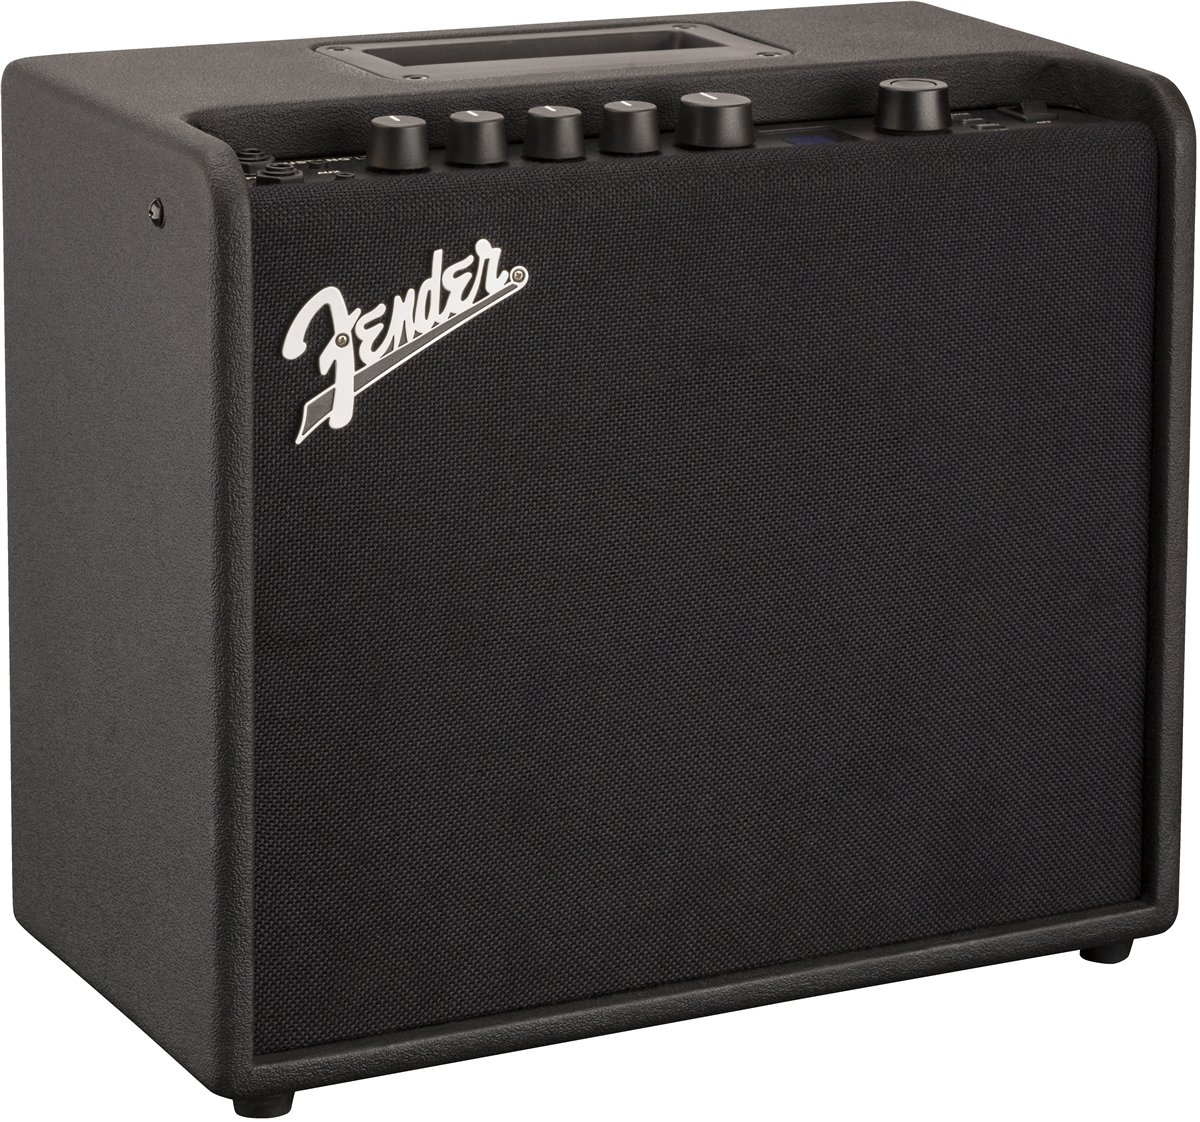 Mustang LT 25 Guitar Amplifier